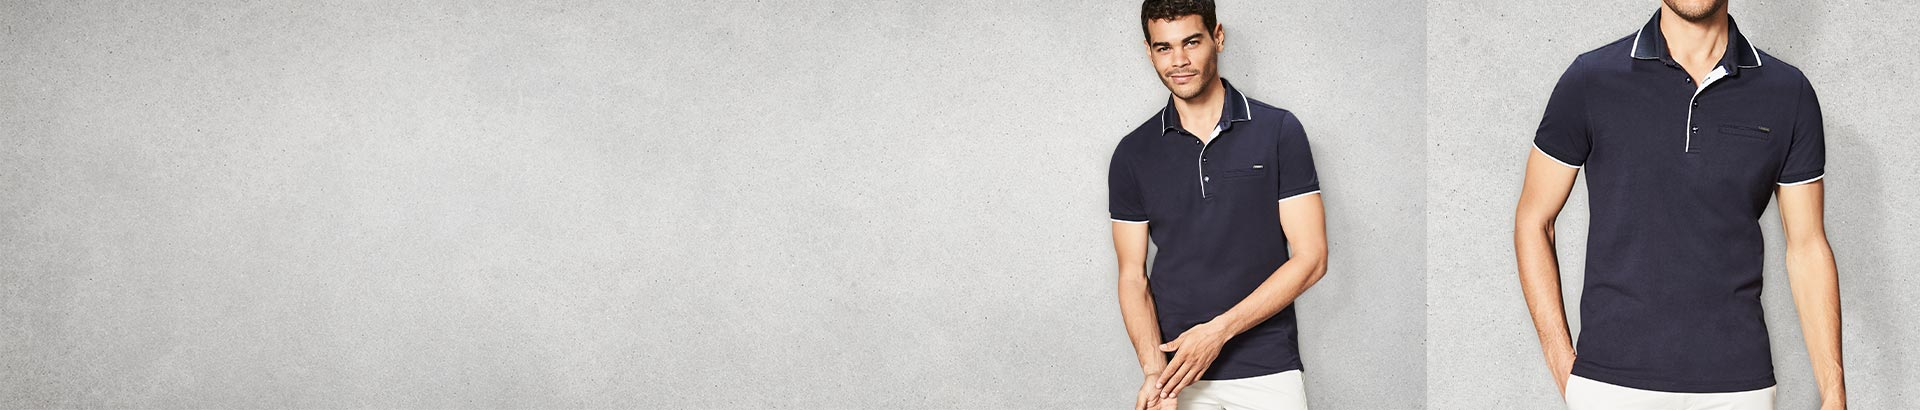 Mens Polo Shirts Online Australia